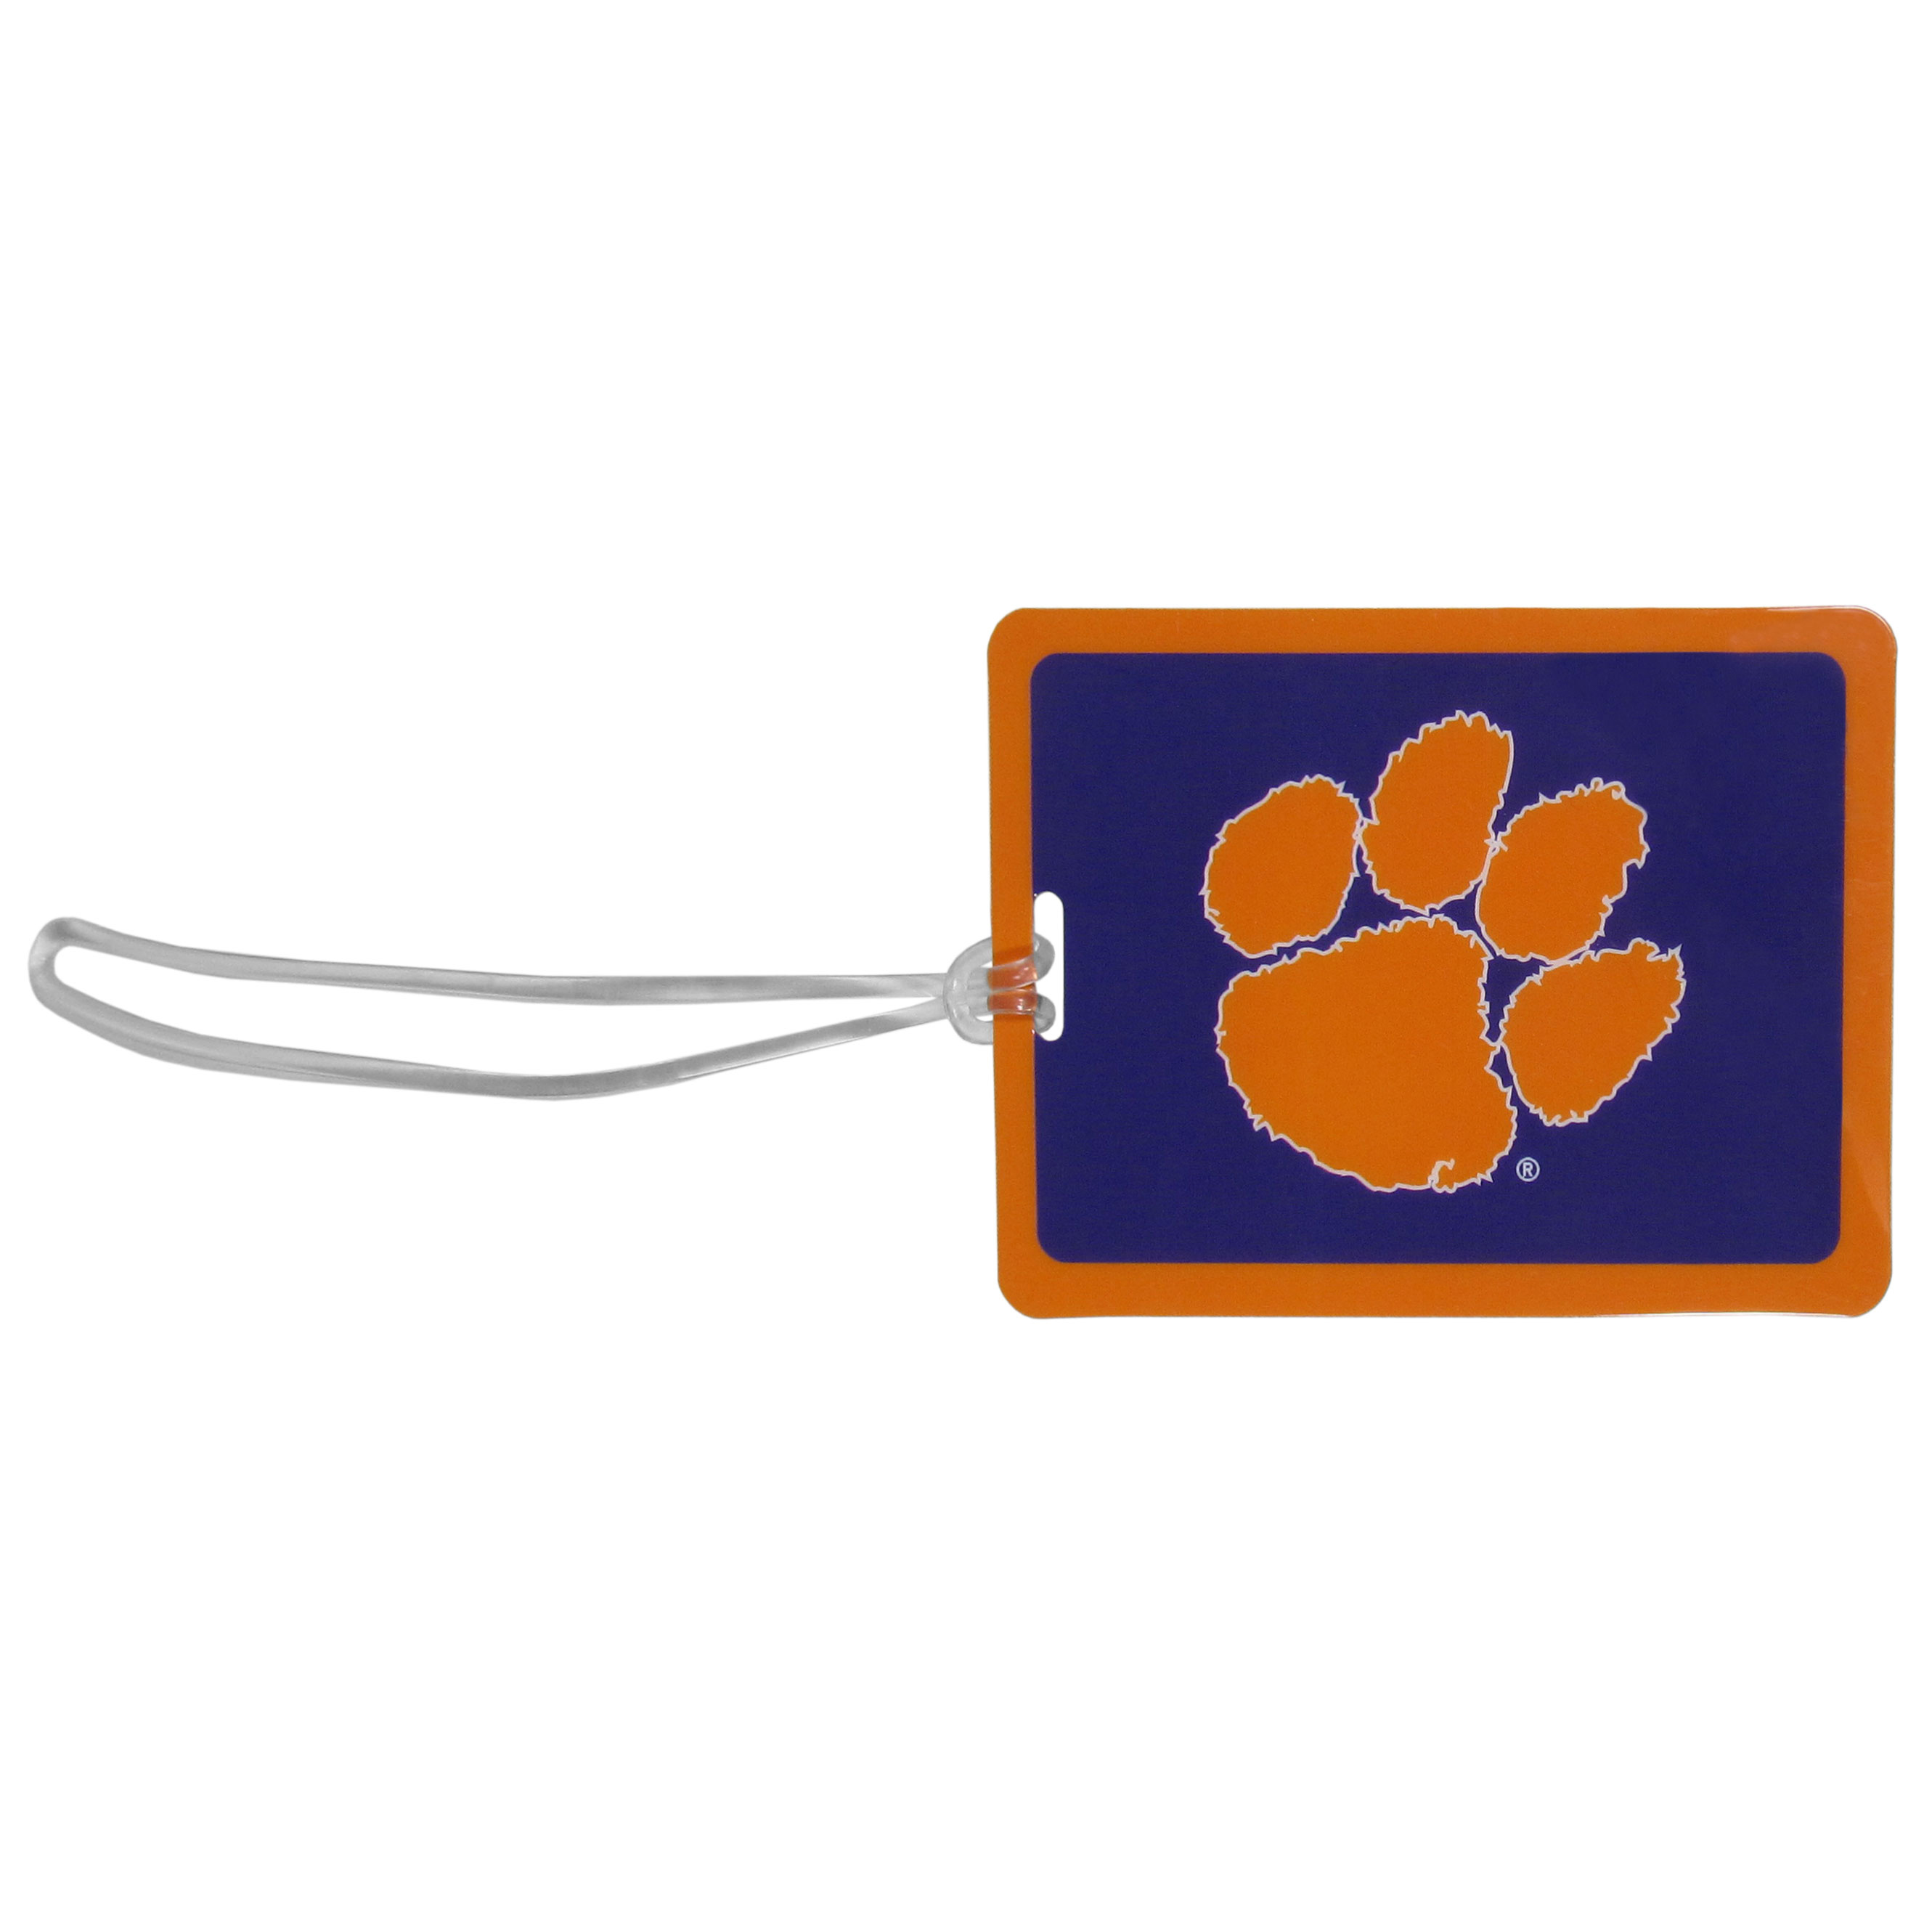 Clemson Tigers Vinyl Luggage Tag - Tired of trying to spot your suitcase or bag in a sea of luggage? Try our large and colorful Clemson Tigers luggage tag set. The tag is 4x3 inches and has a 5 inch cord to attach it easily to your bags, backpacks or luggage. The front of the tag features the team logo in a bright, team colored background and you can write you name, address and phone number on the back of the tag.